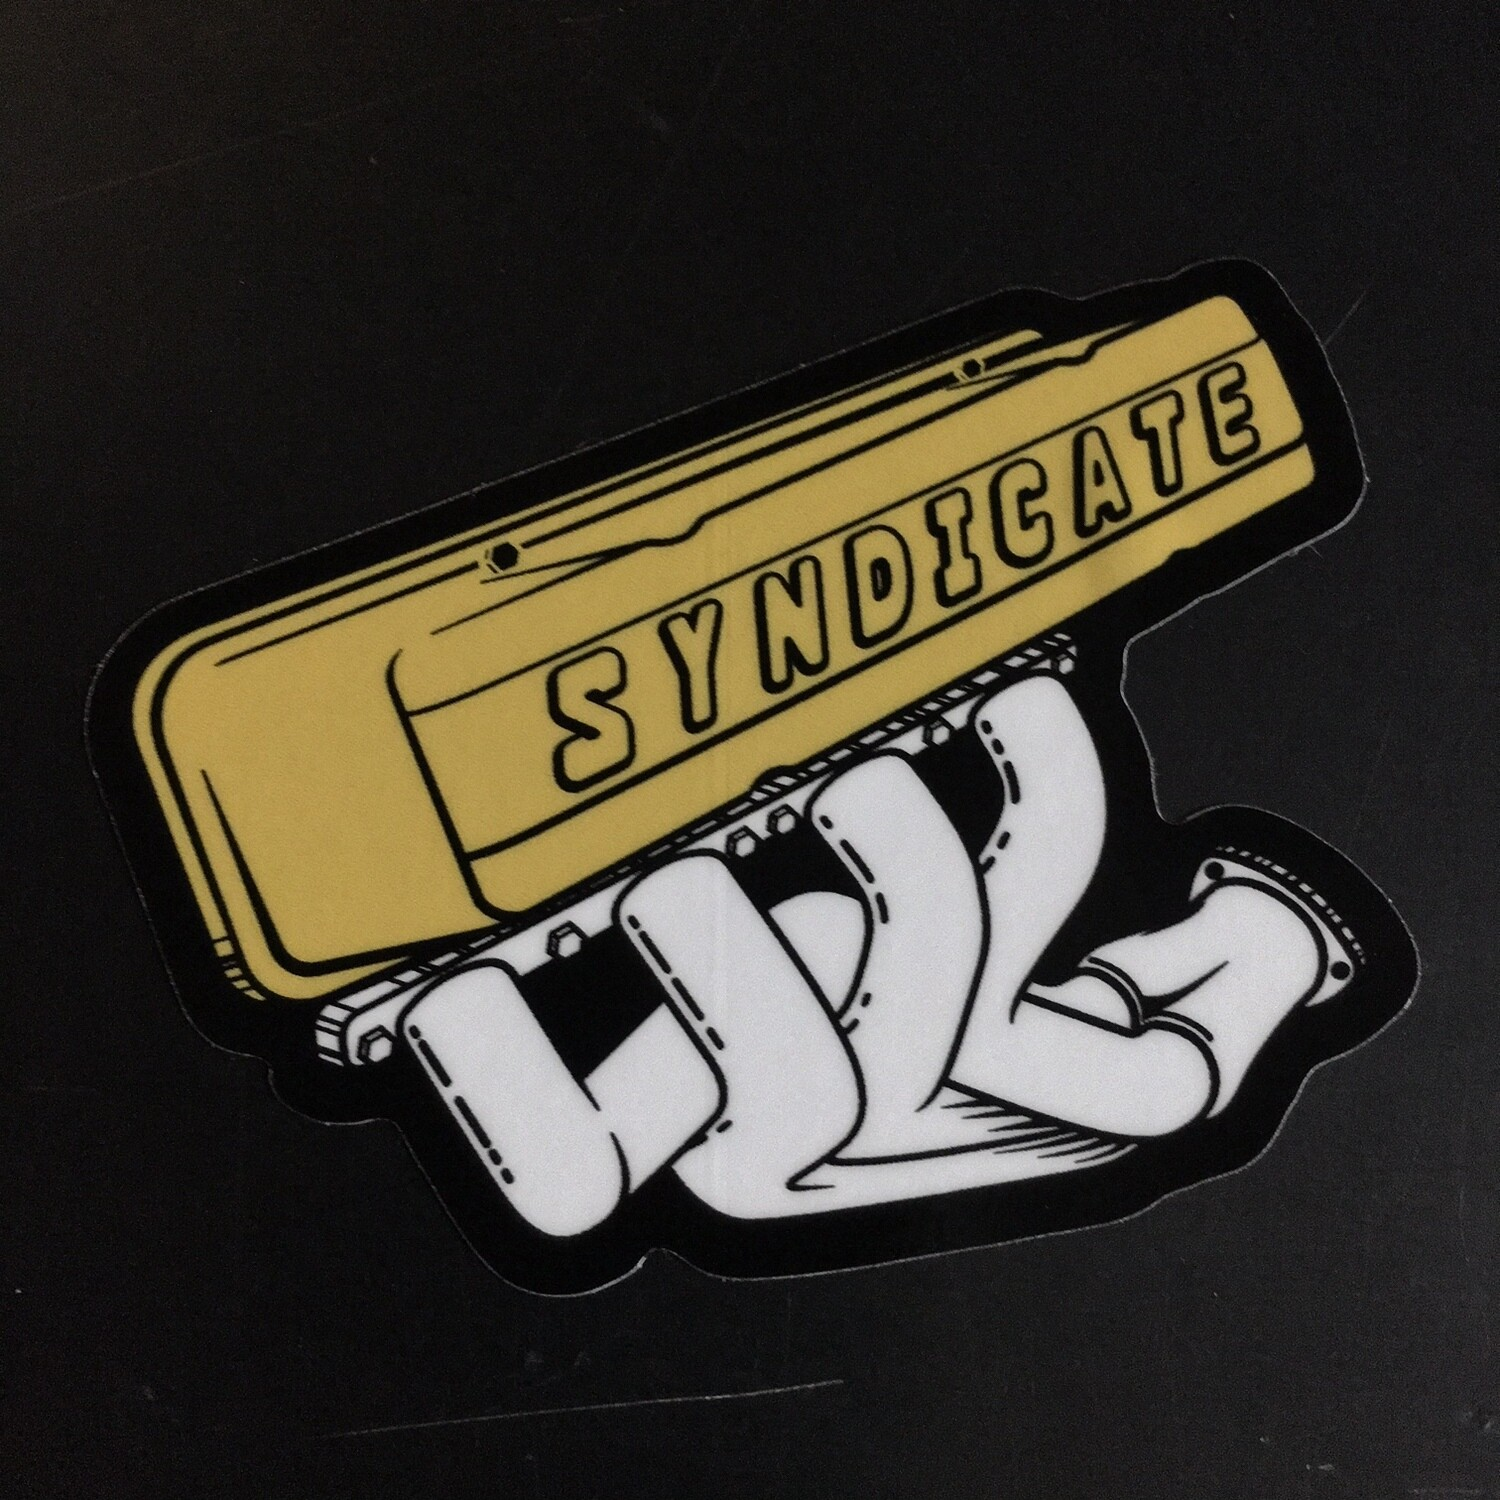 SS02 SYNDICATE HEADER DECAL